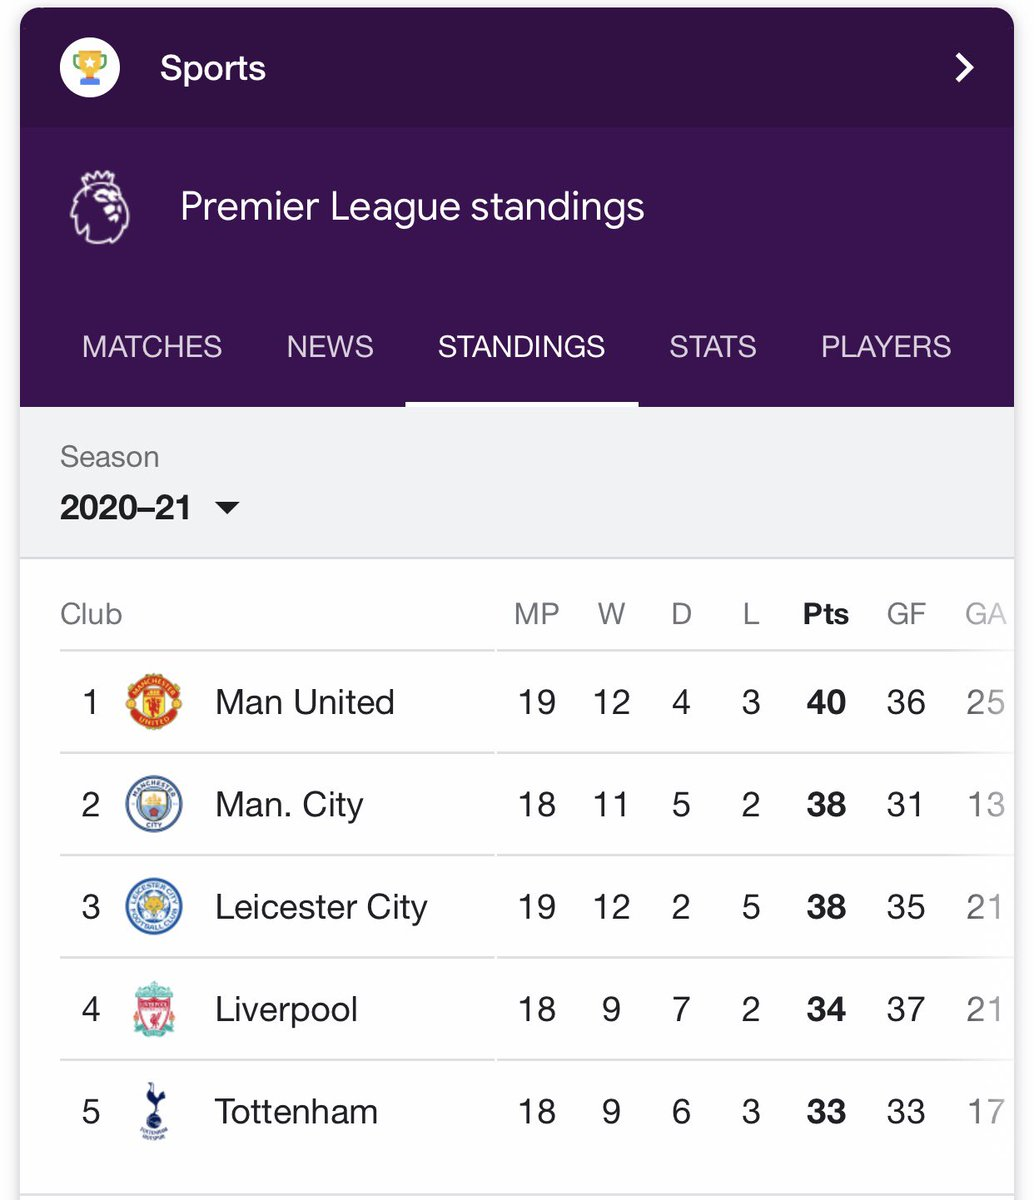 100 years later 😄Manchester United still Dey Top Premier league Table ⚽️⚽️  E choke 😂🤪🤪 ⚽️⚽️  #FULMUN  #MUNFUL